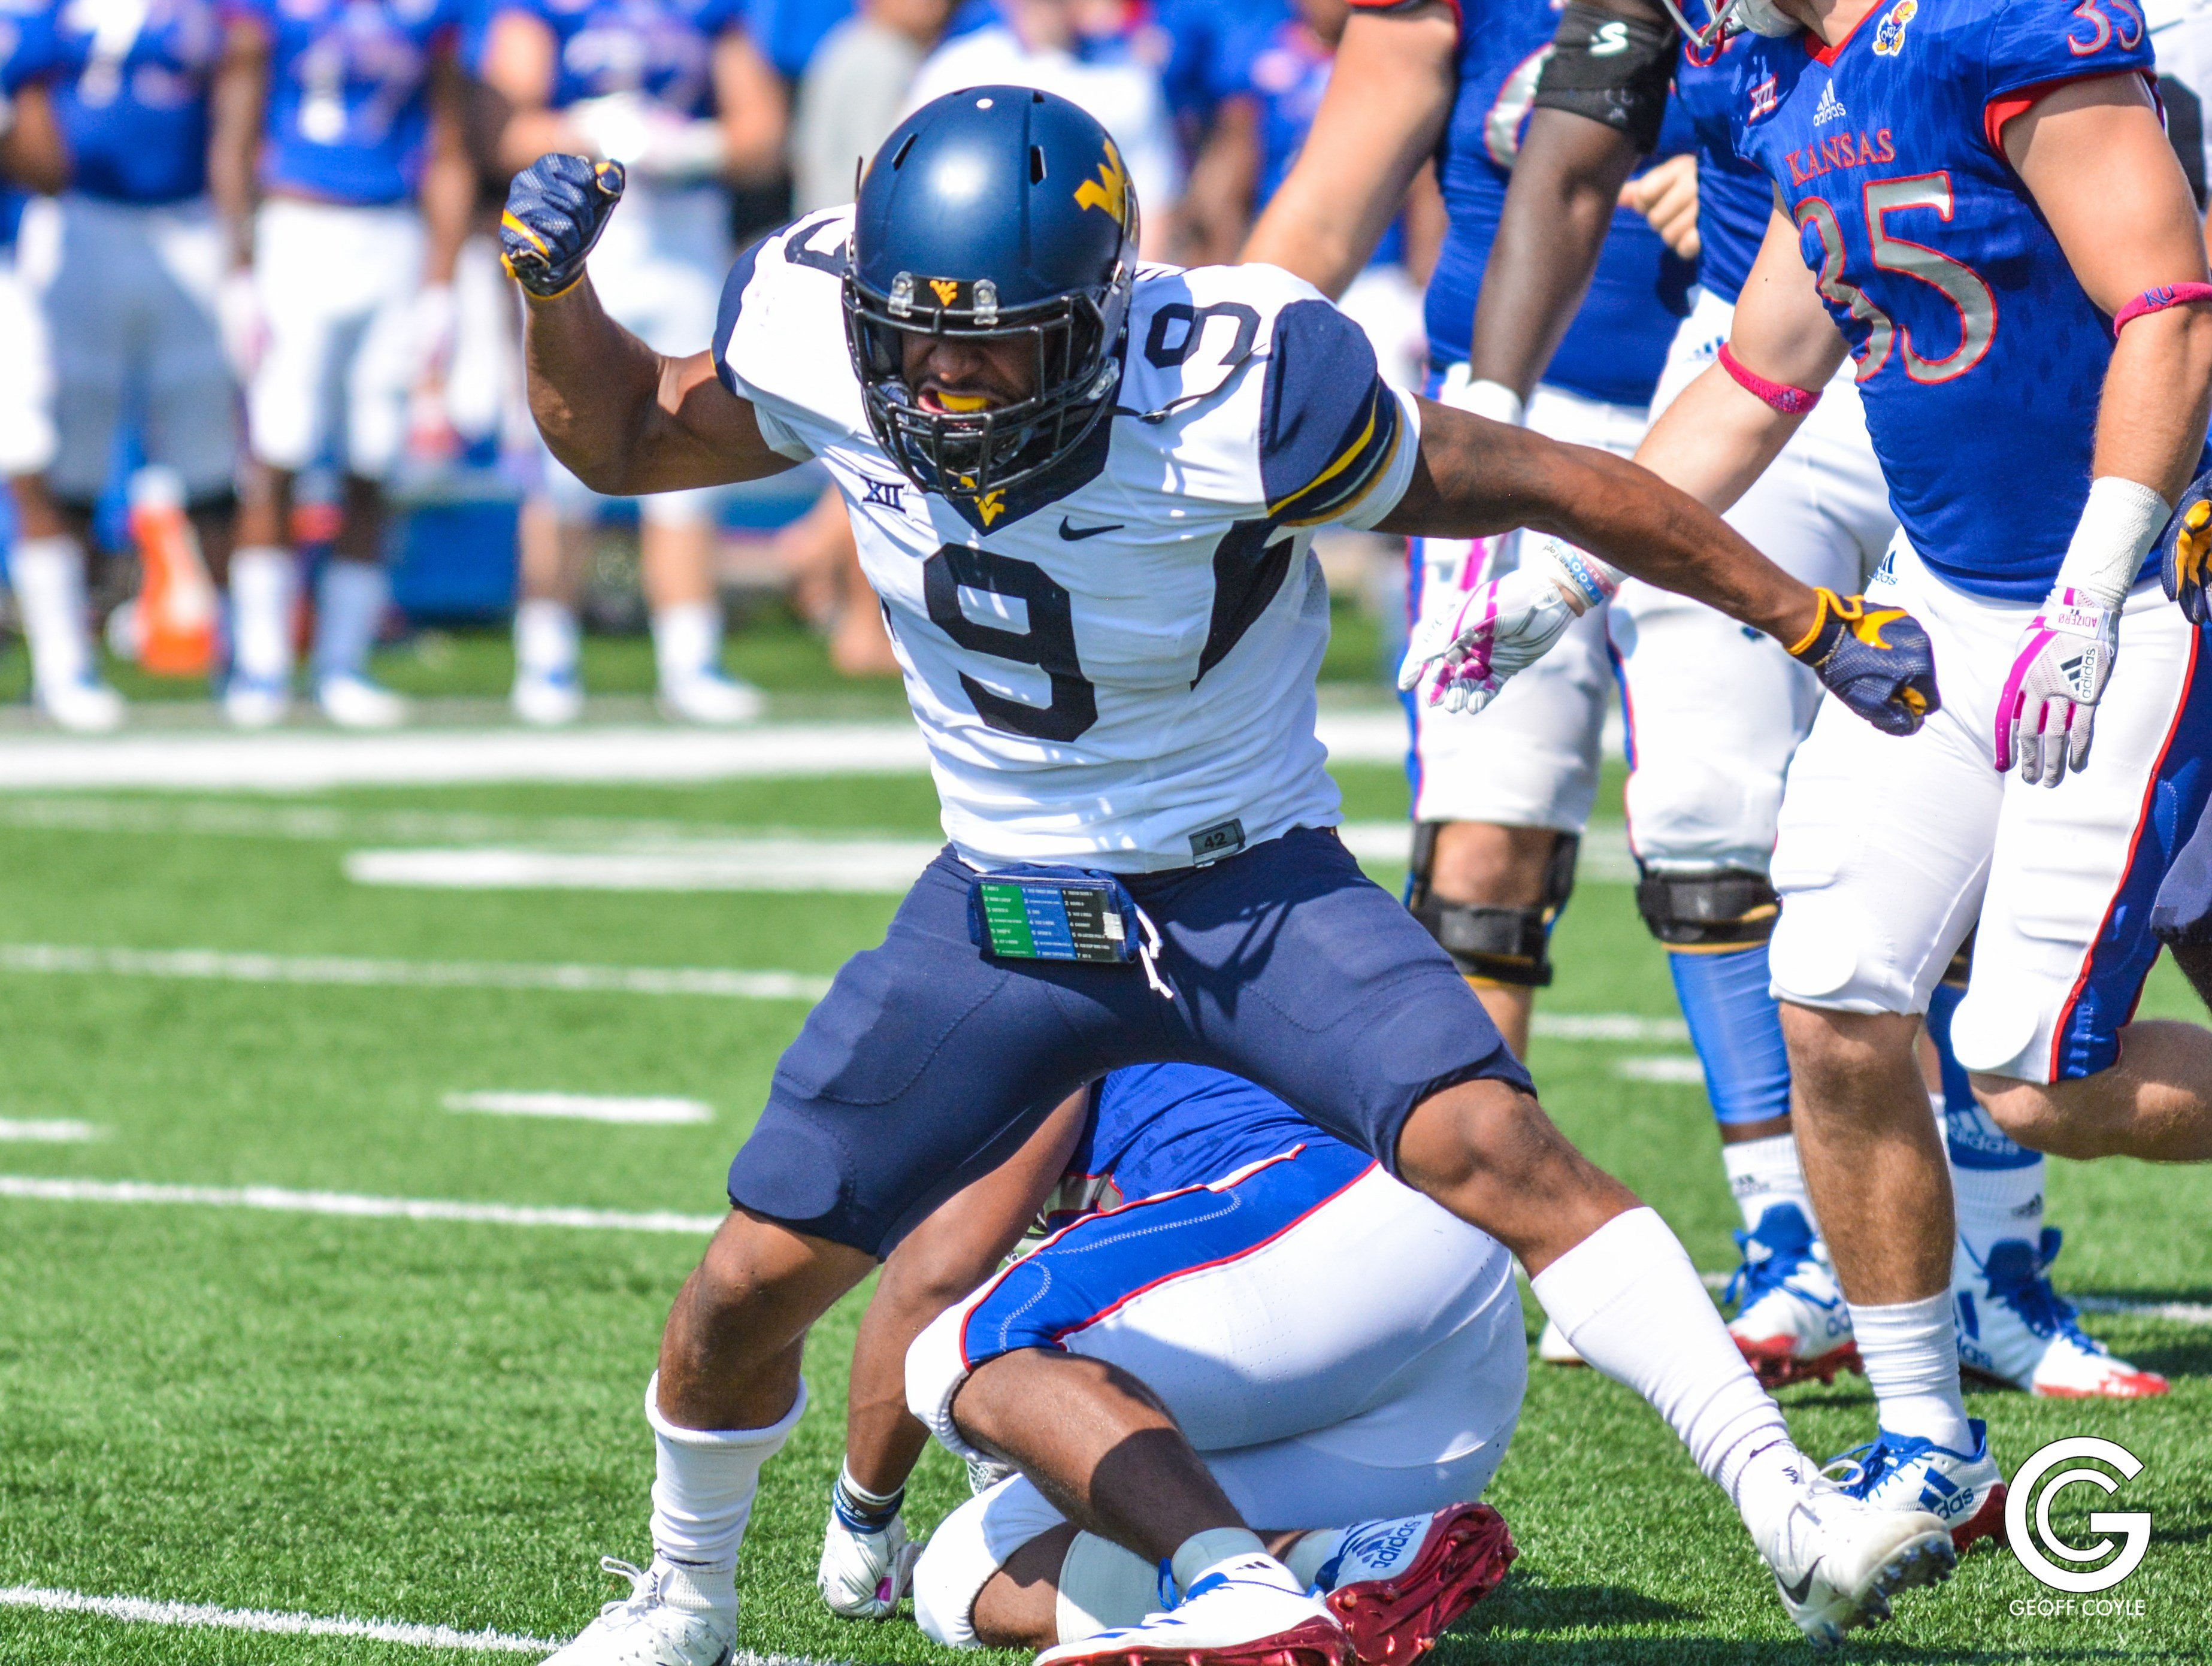 WVU sophomore safety JoVanni Stewart celebrates a tackle for a loss in a 56-34 victory over Kansas. (PHOTO: Geoff Coyle)